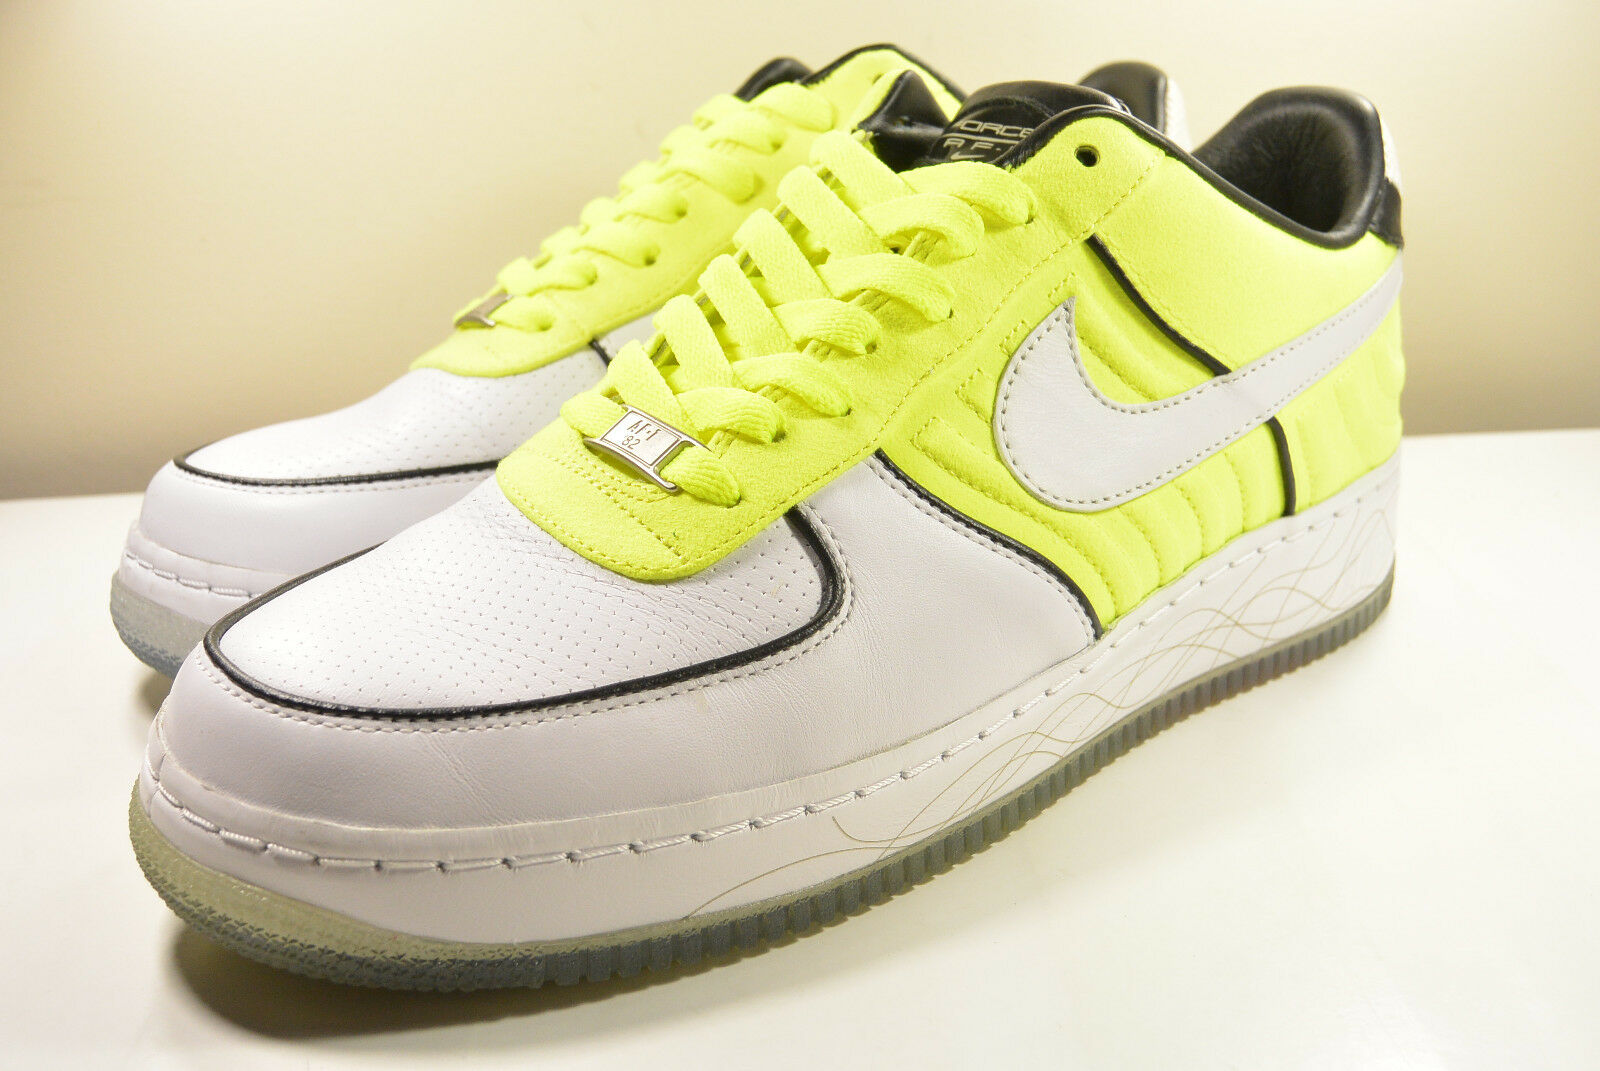 2007 NIKE AIR FORCE 1 TALARI TENNIS SUPREME ATMOS I/O NEON YELLOW 10 ATMOS SUPREME CAMO 90 MAX 193391